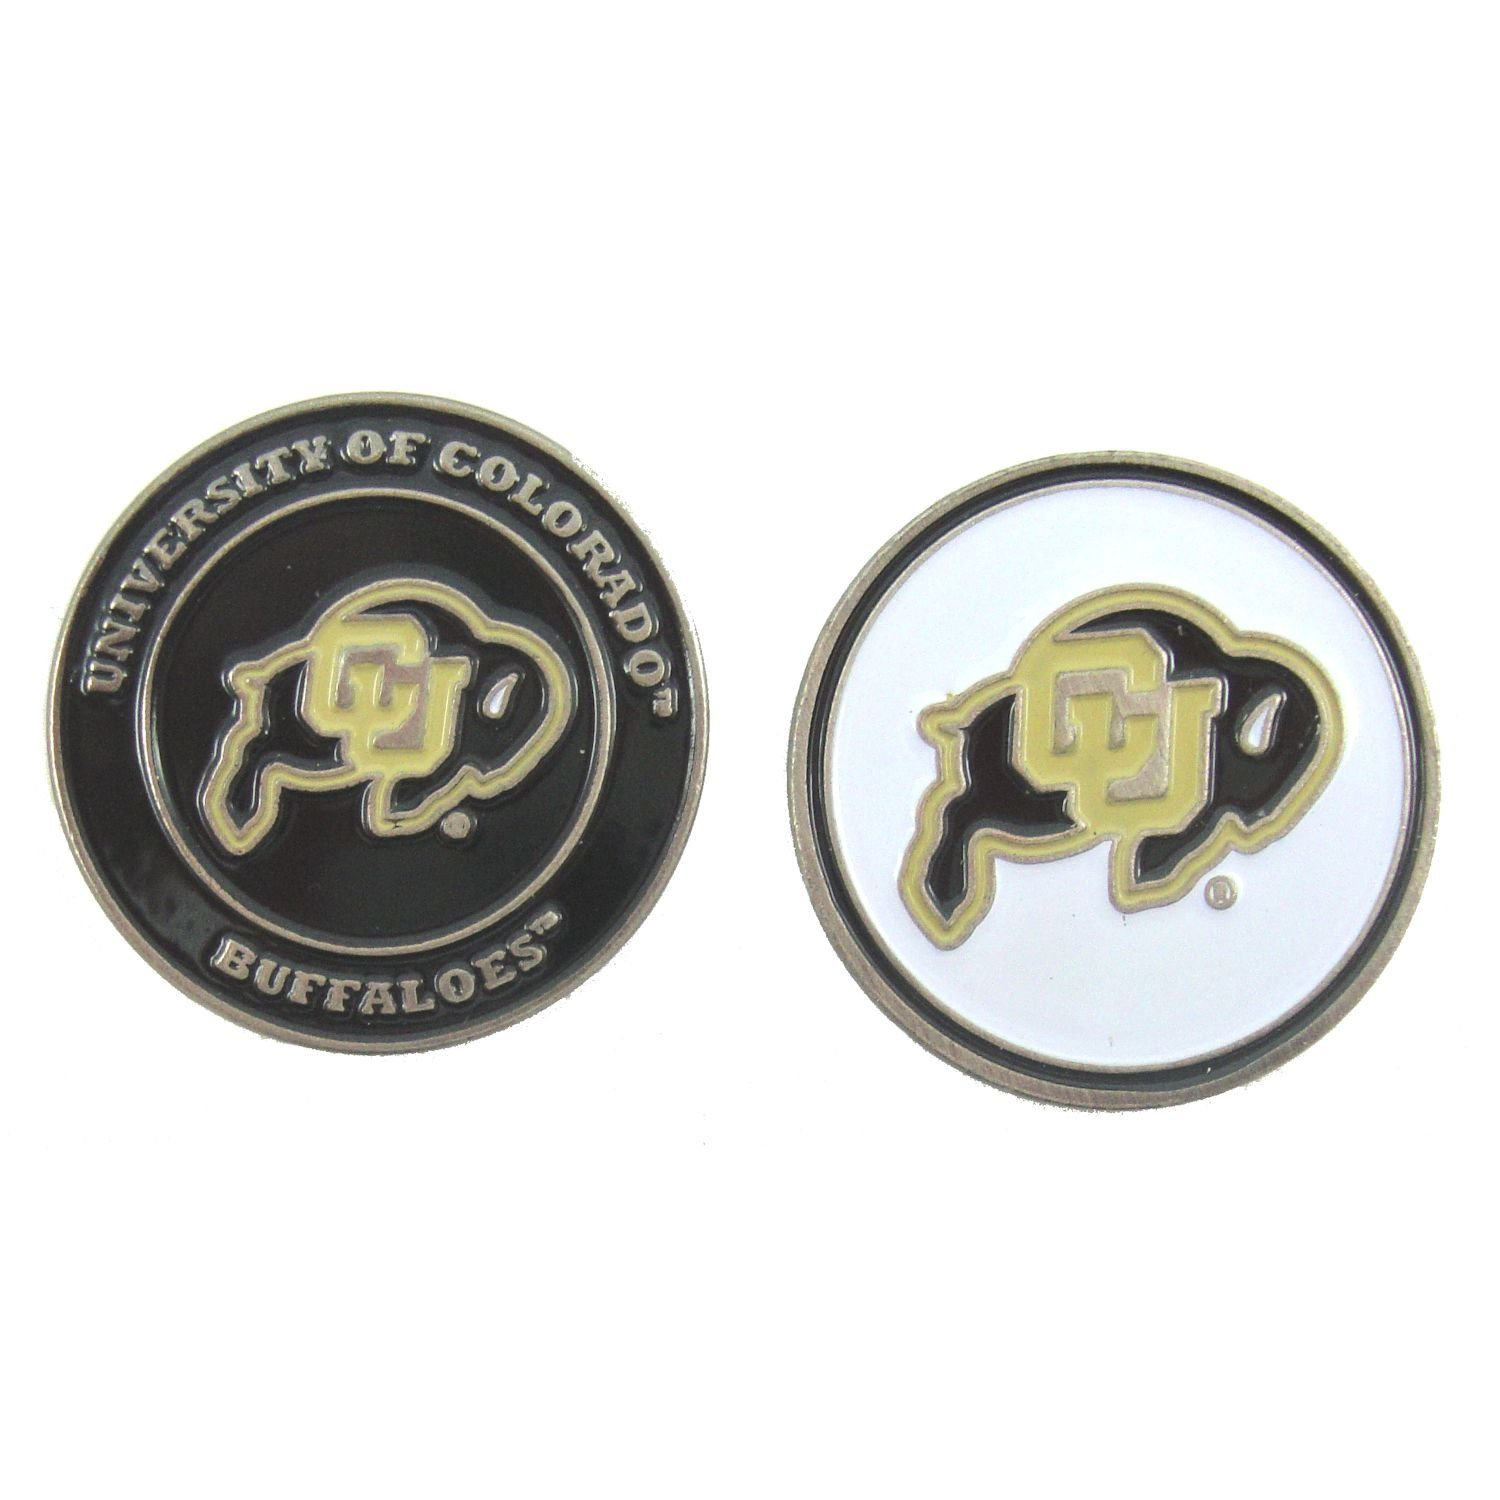 Colorado Buffaloes Double-Sided Golf Ball Marker, University of Colorado Golf Ball Marker By Waggle Pro Shop,USA